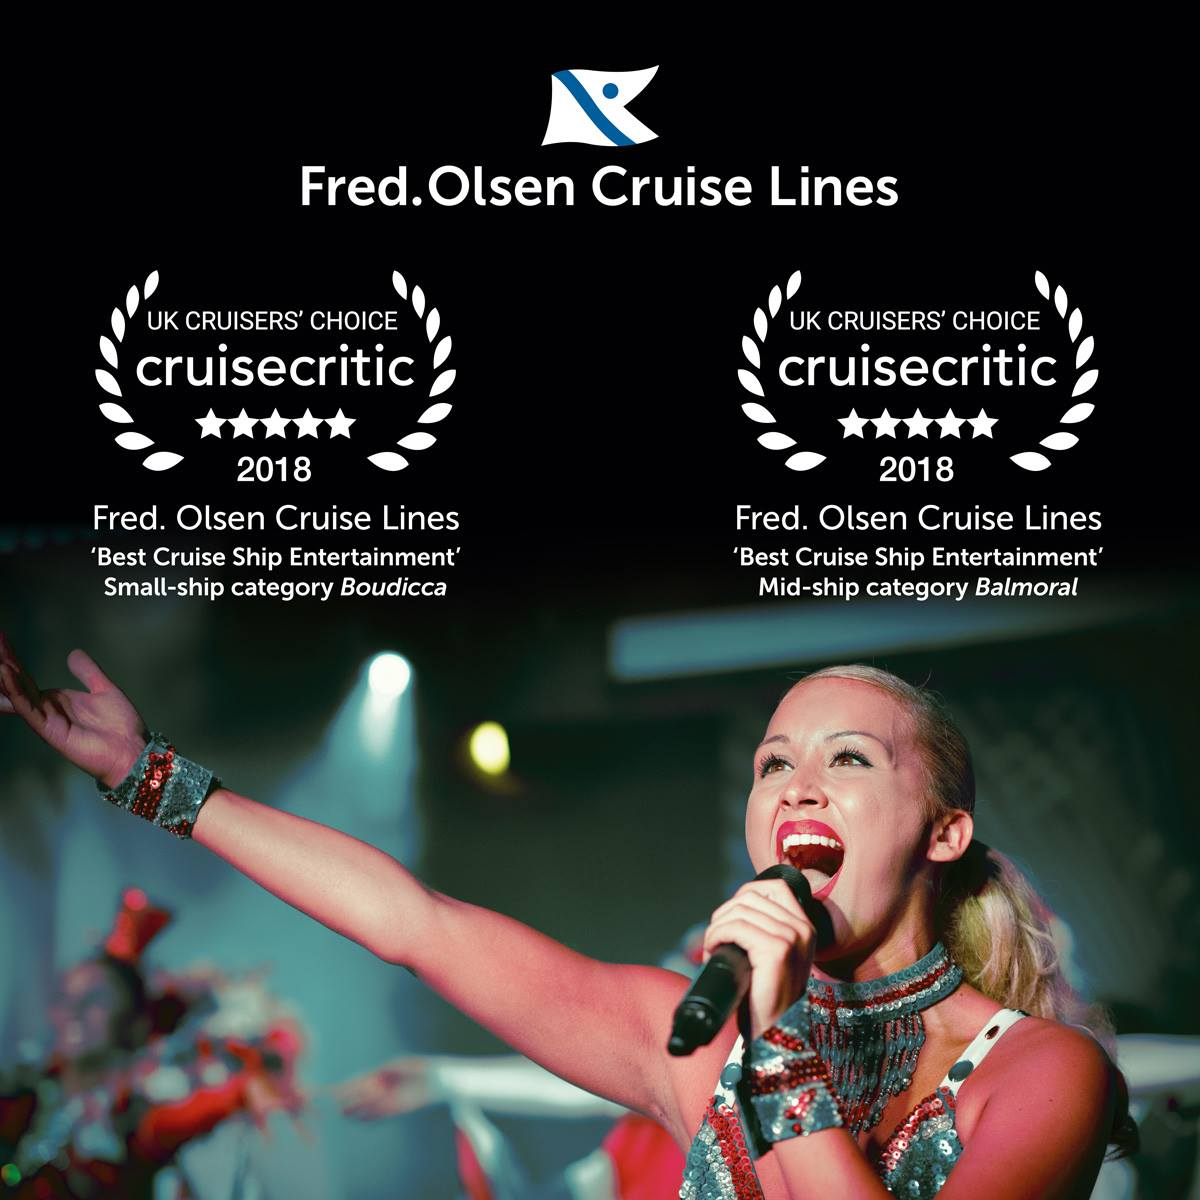 Cruise Critic Award Winners